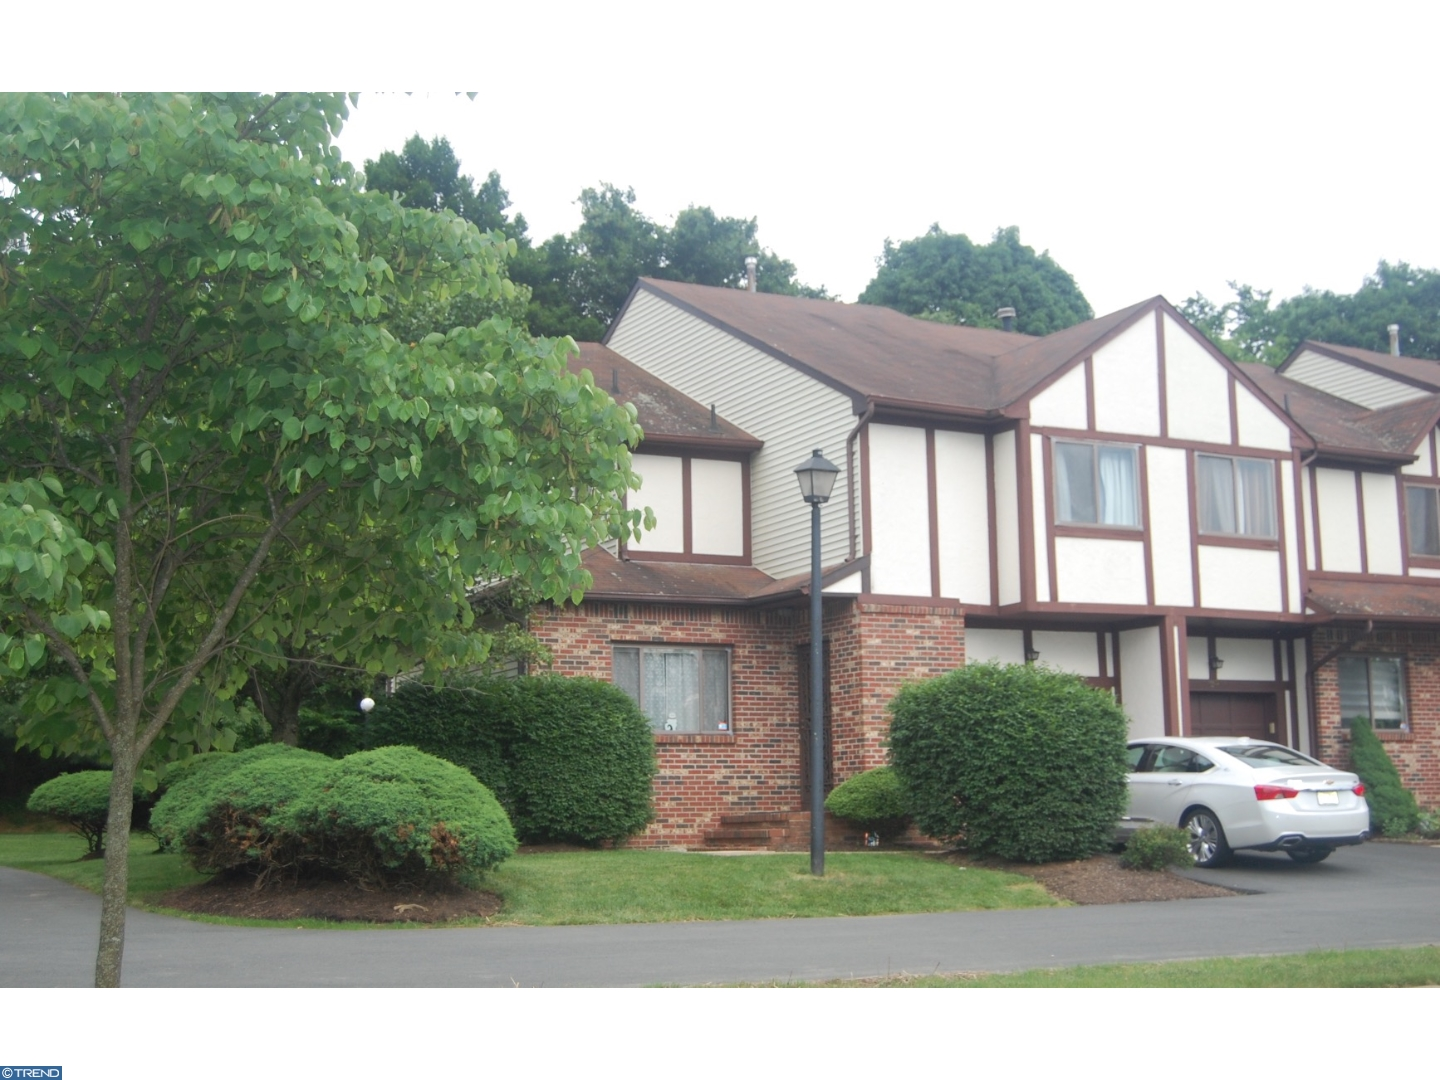 22 HASTINGS CT, EWING, NJ 08628